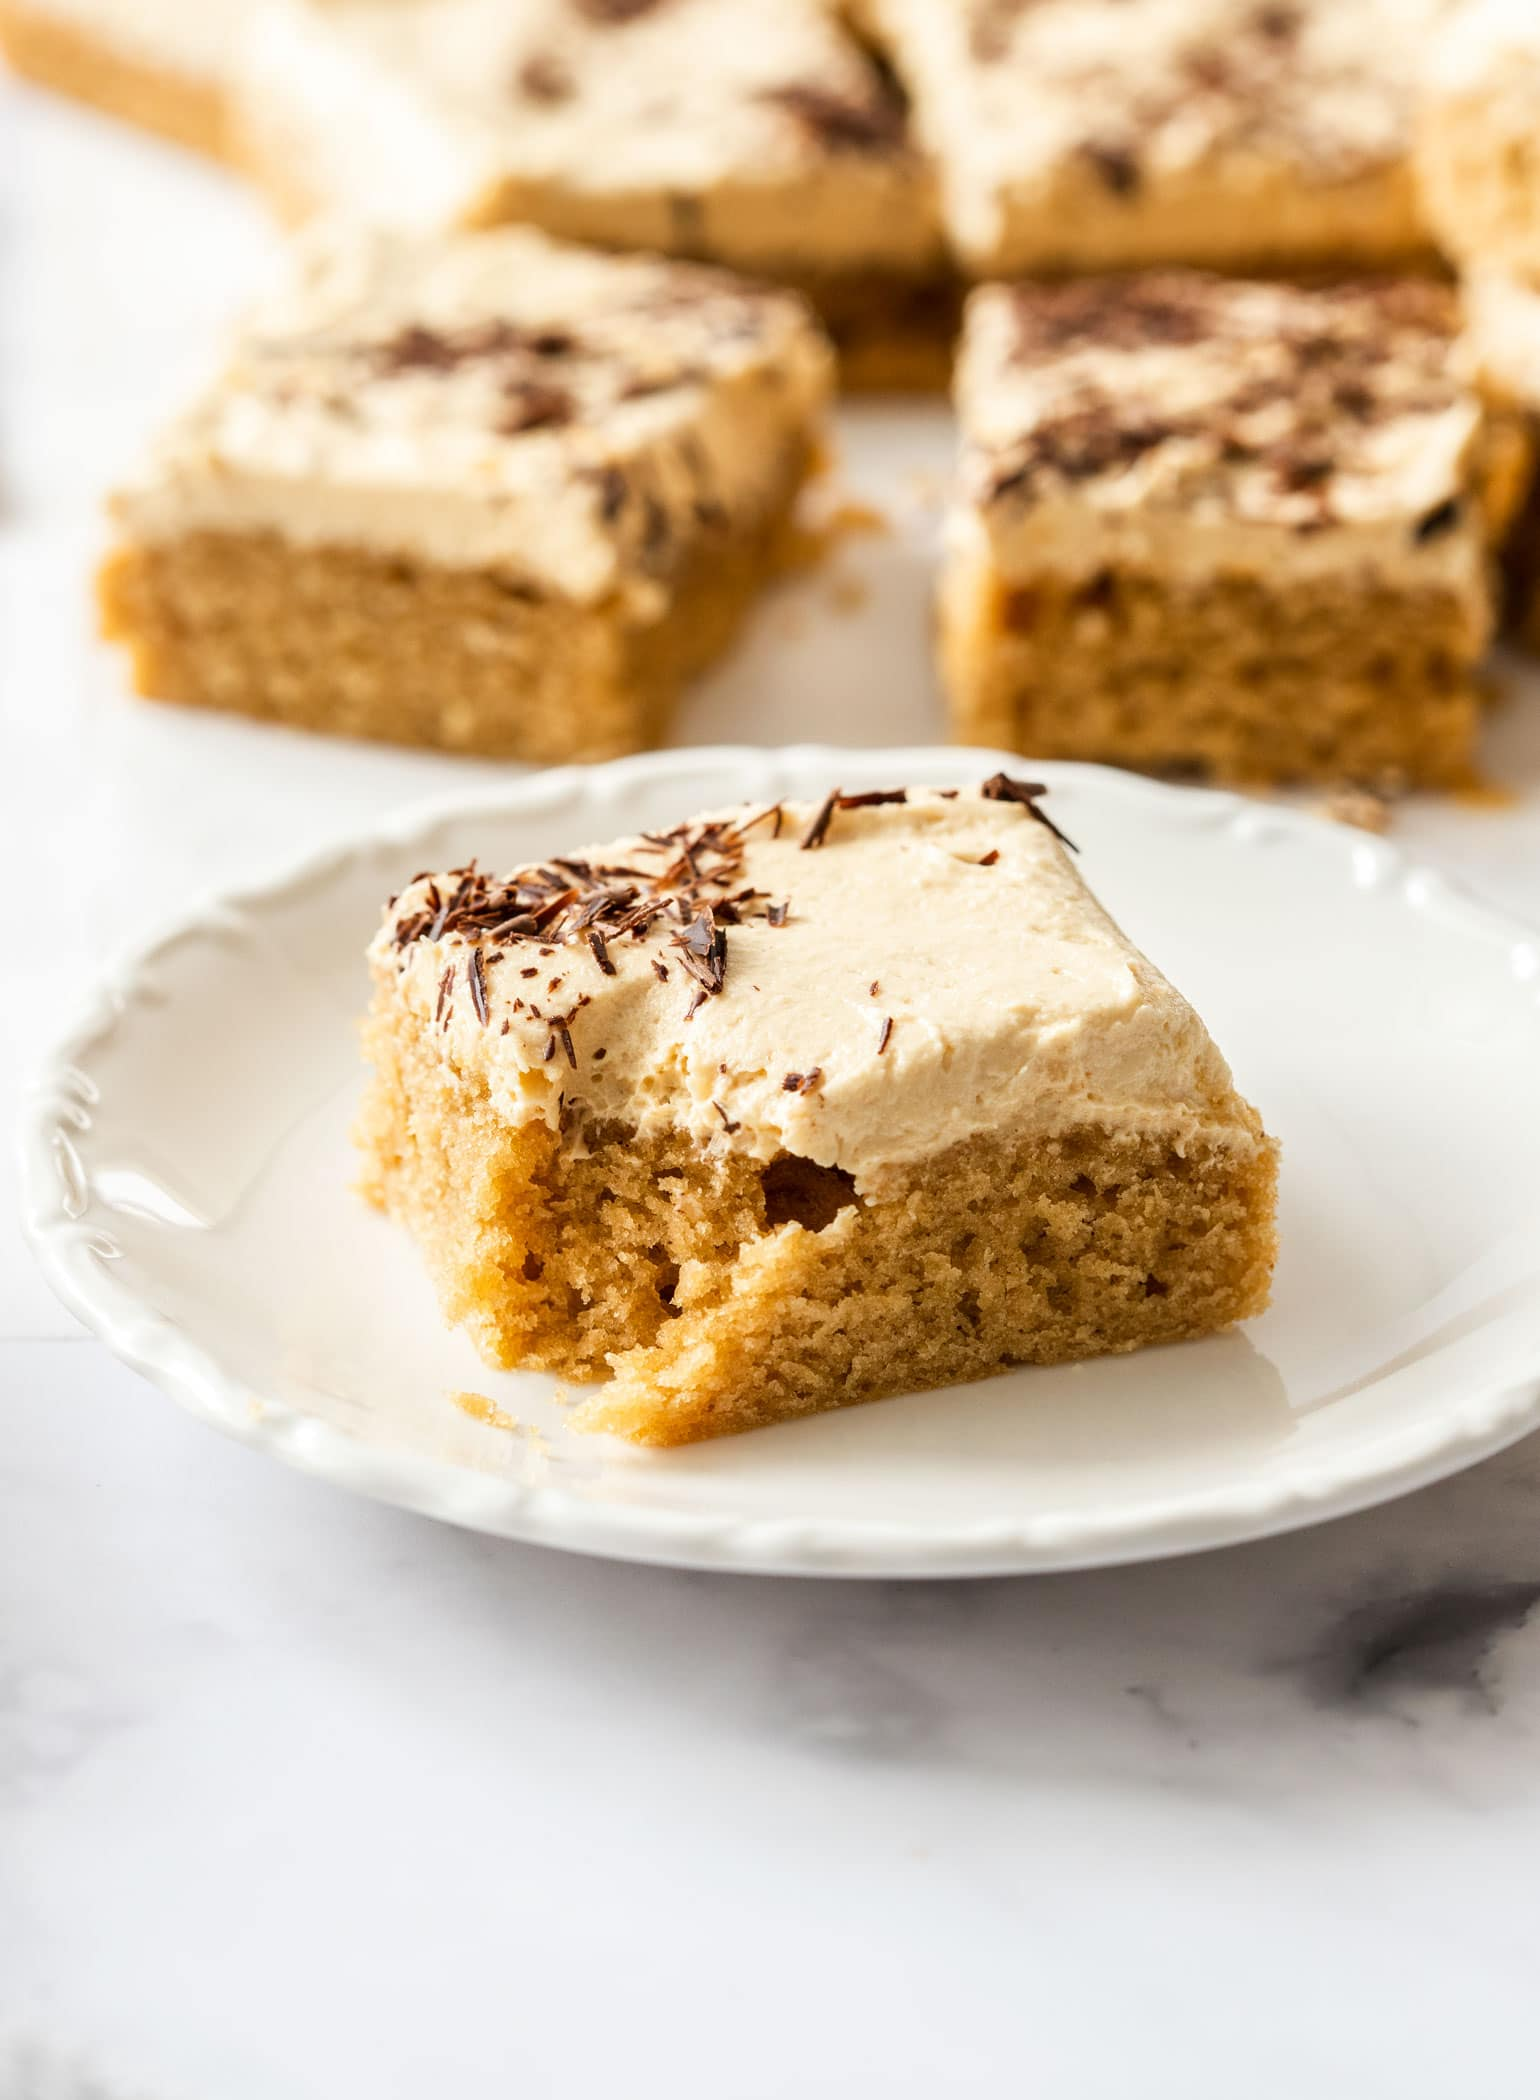 a slice of peanut butter sheet cake on a white saucer